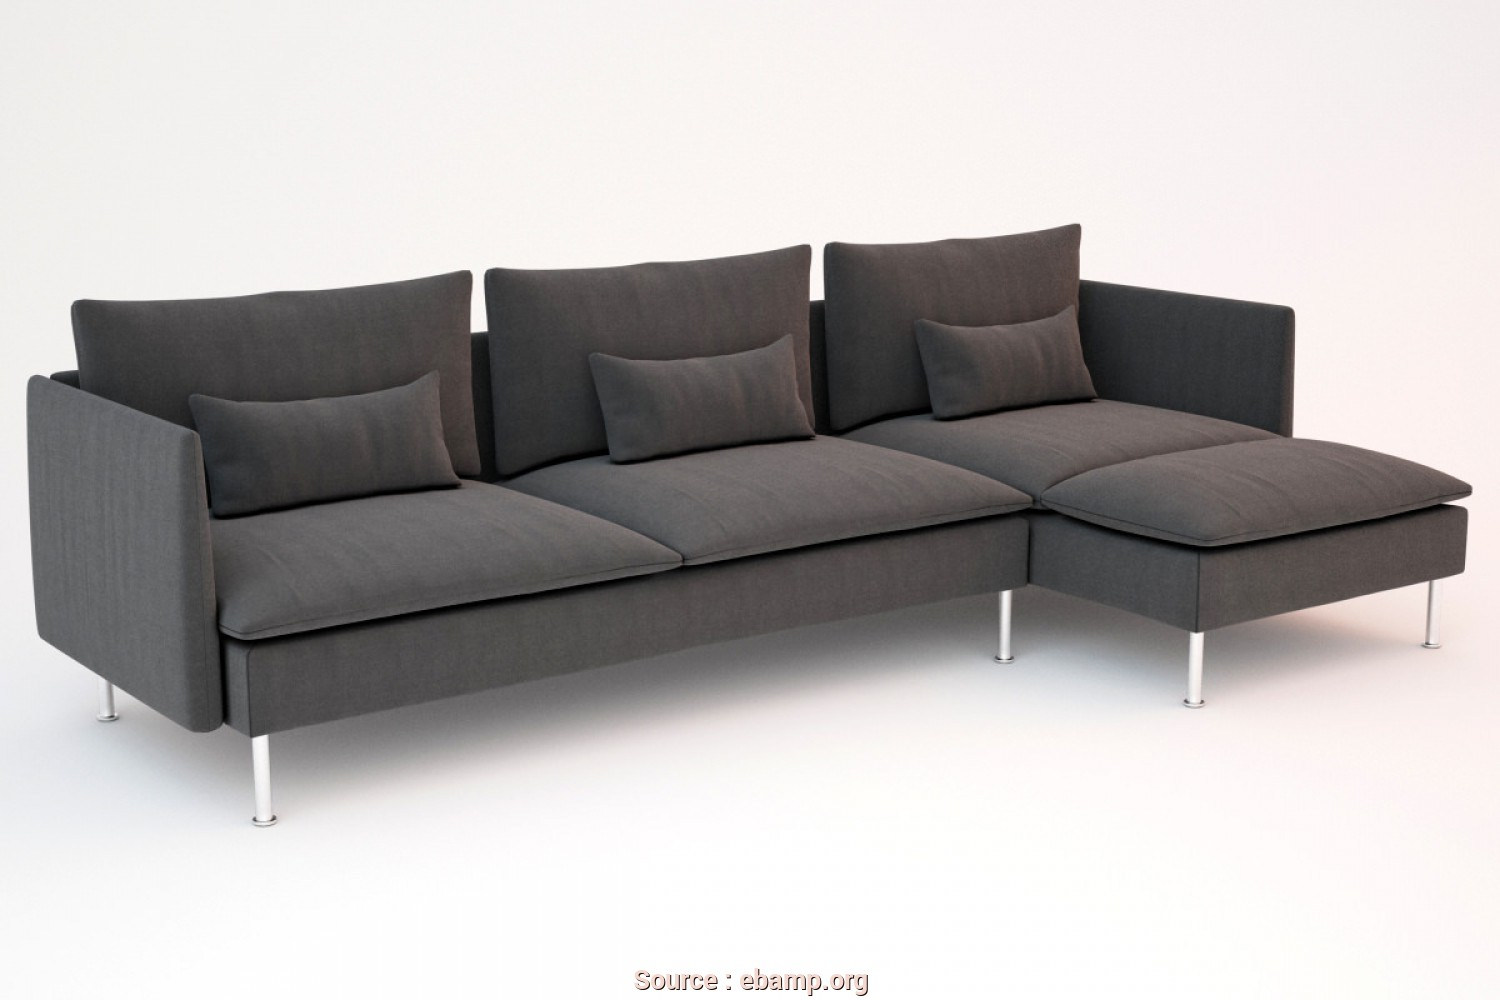 Reviews, Ikea Backabro Sofa Bed, Casuale Sofas: Ikea Couch, With Cool Style To Match Your Space, IKEA